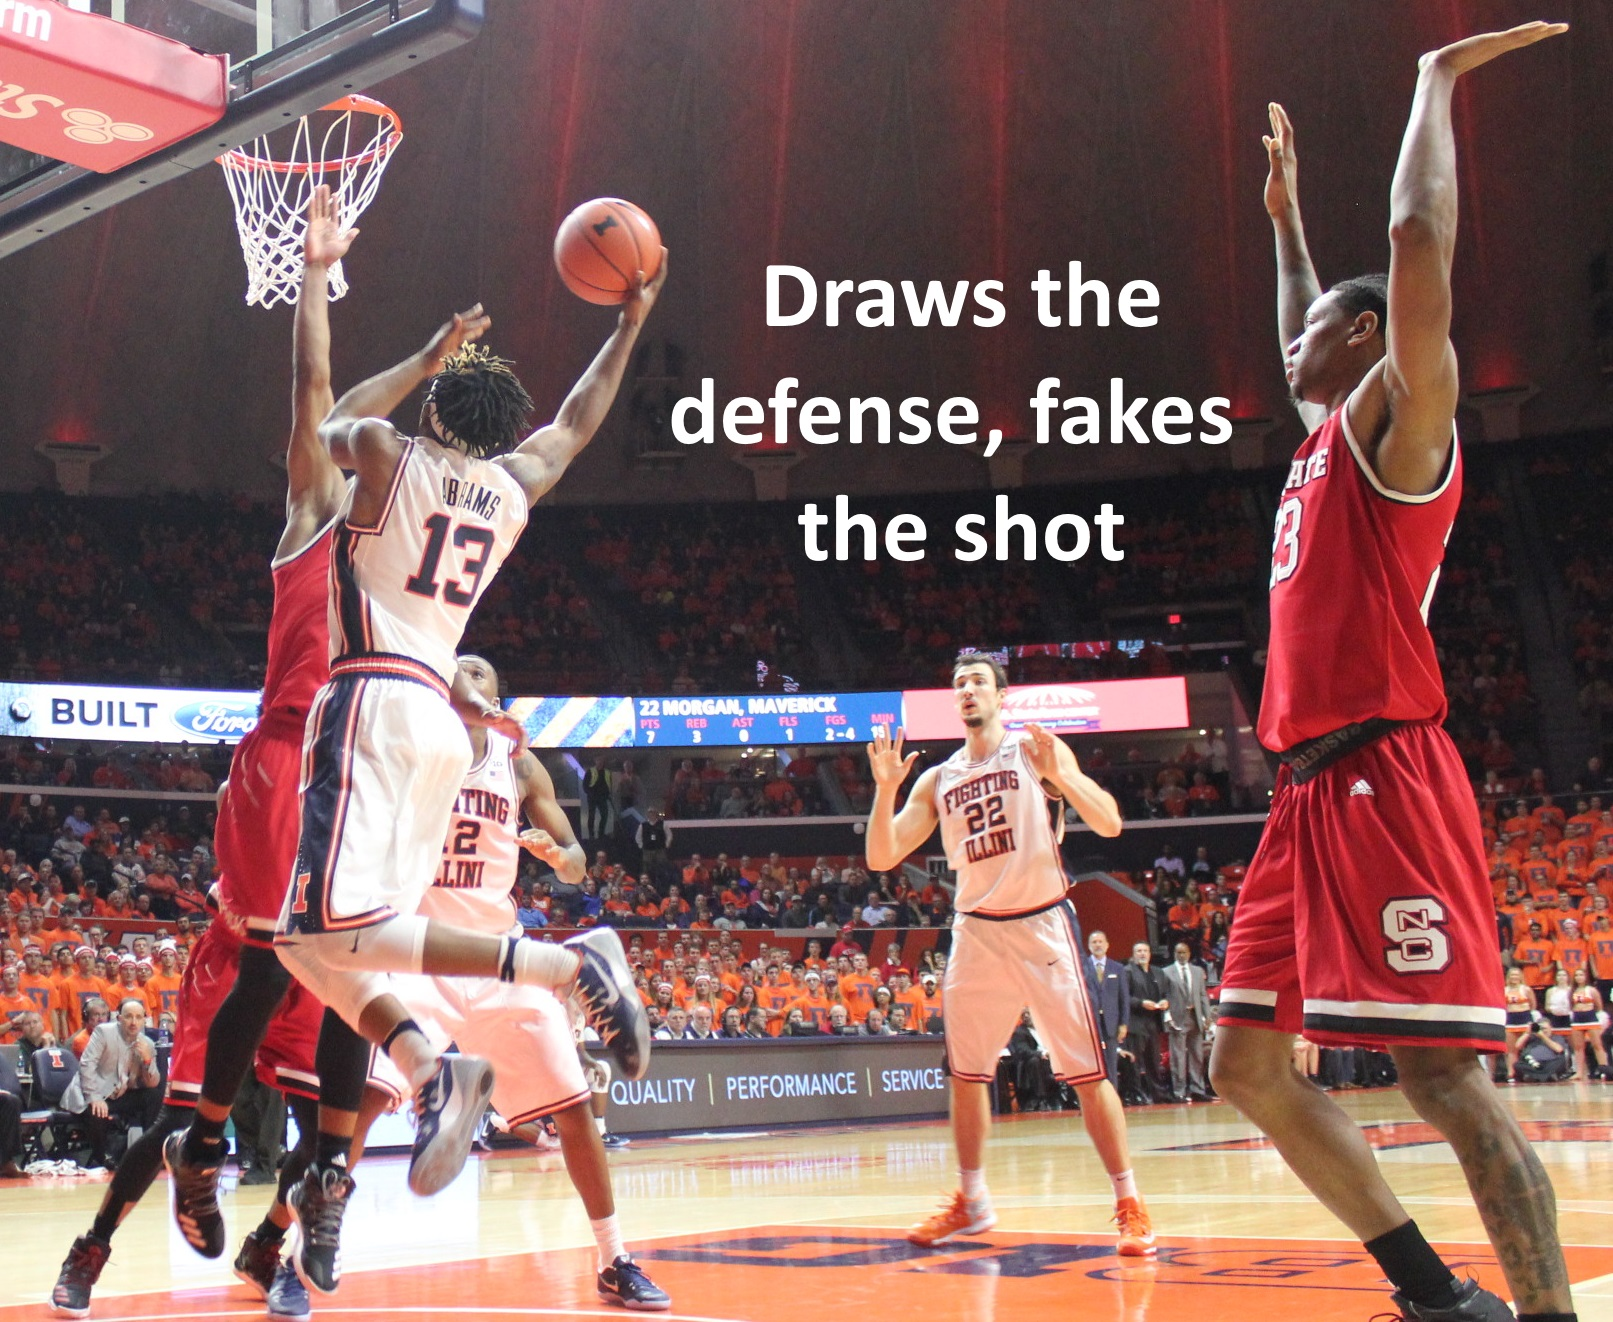 tracy-abrams-draws-the-defense-fakes-the-shot